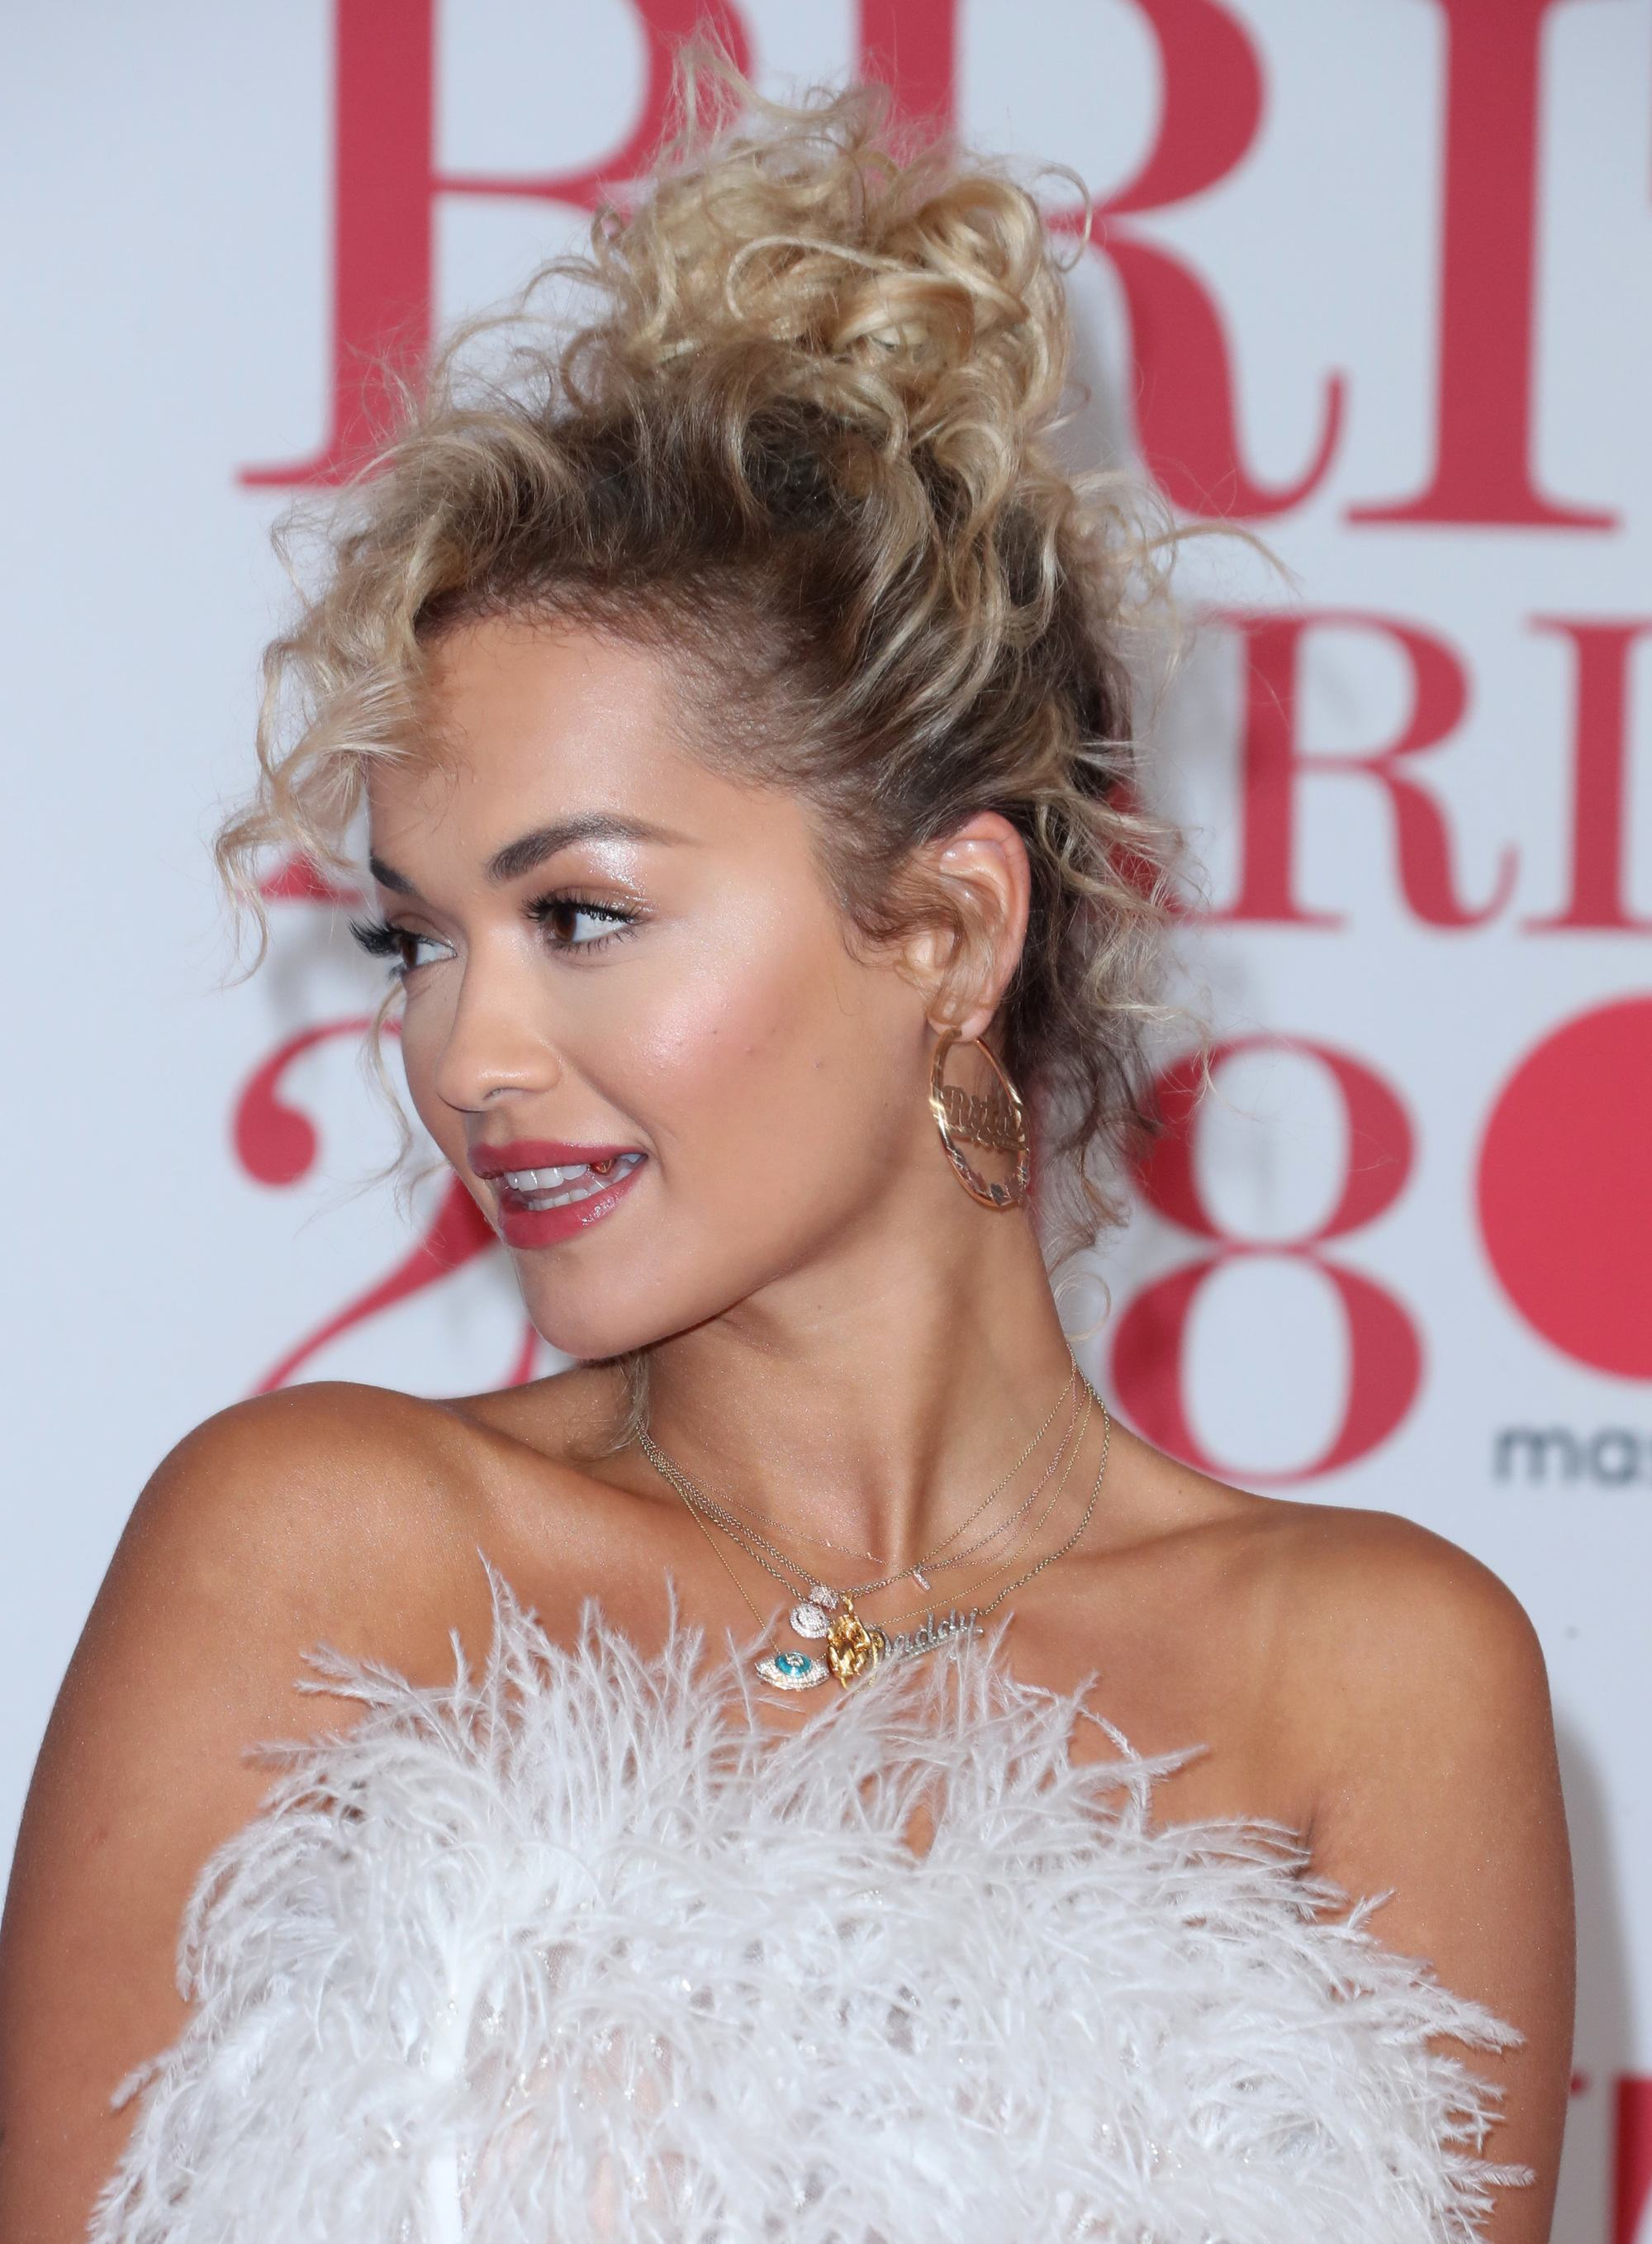 singer rita ora at the 2018 brit awards with her blonde curly hair in a tinkerbell style top knot